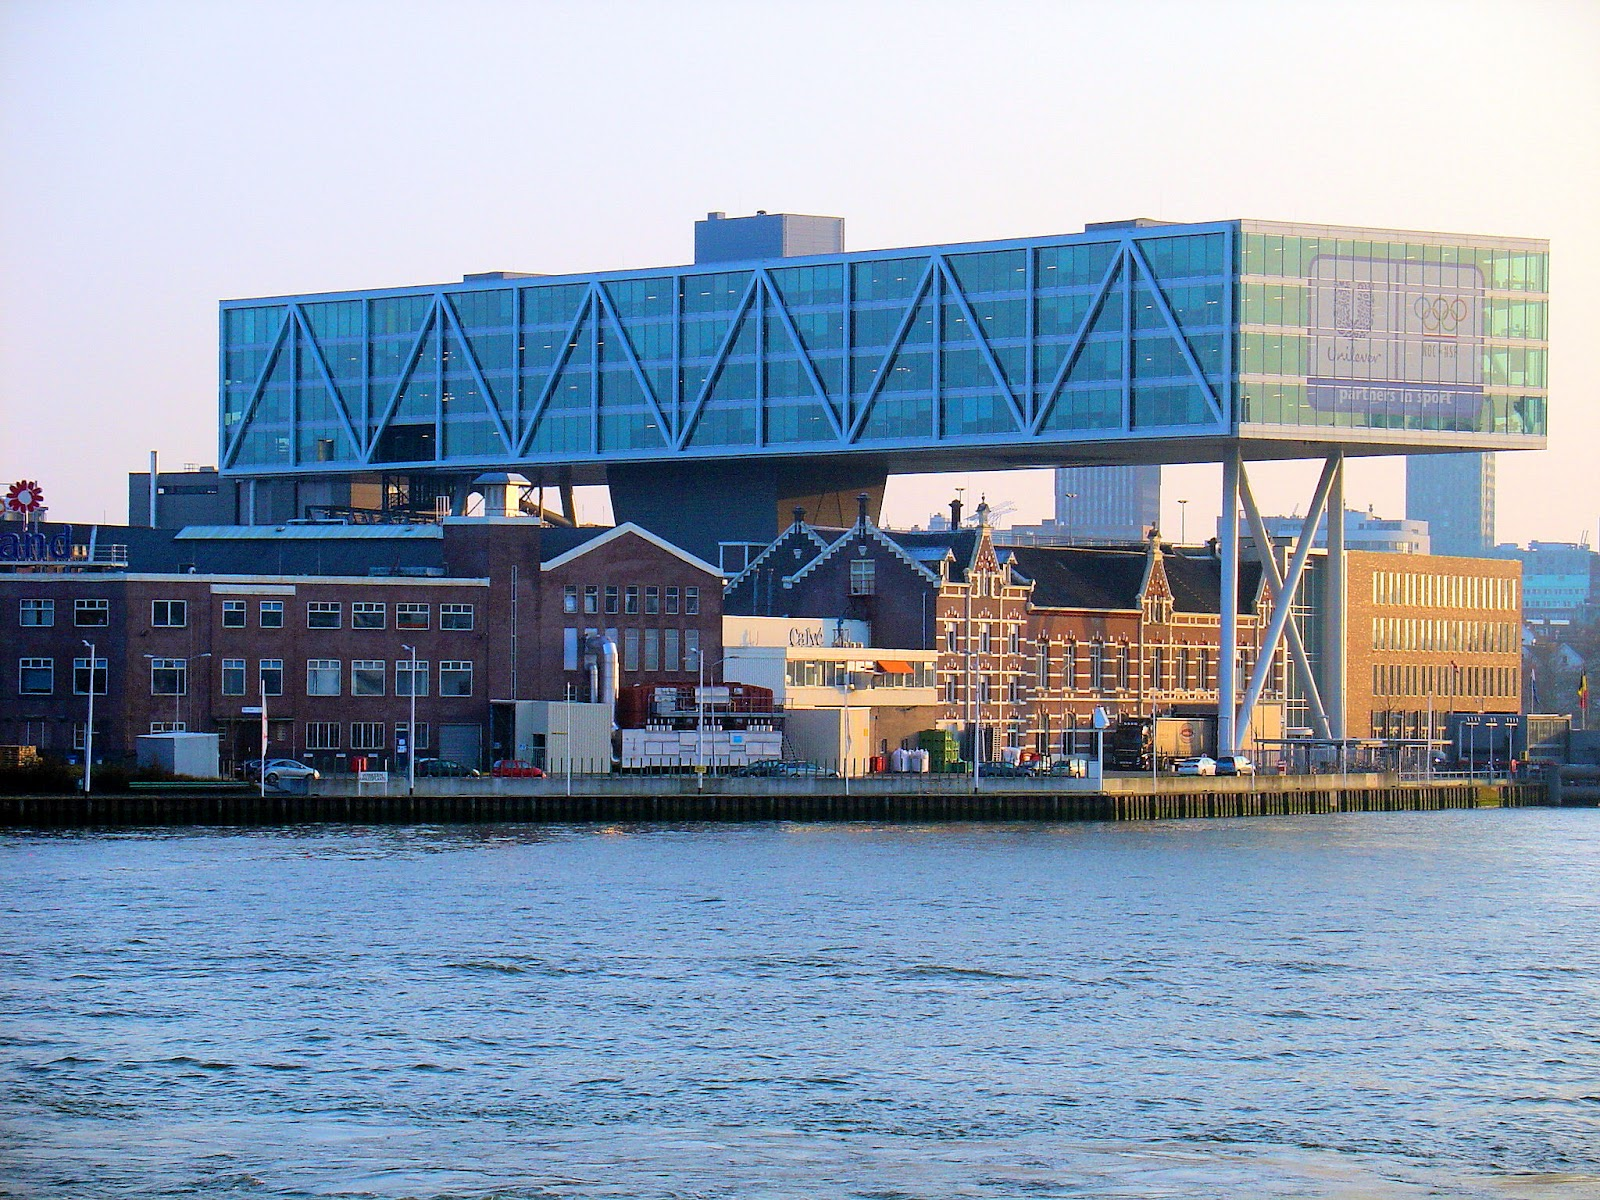 architecture netherlands rotterdam modern dutch traditional meets holland unilever bing global juxtaposition wasn permitted tear down local built shifting shrinking